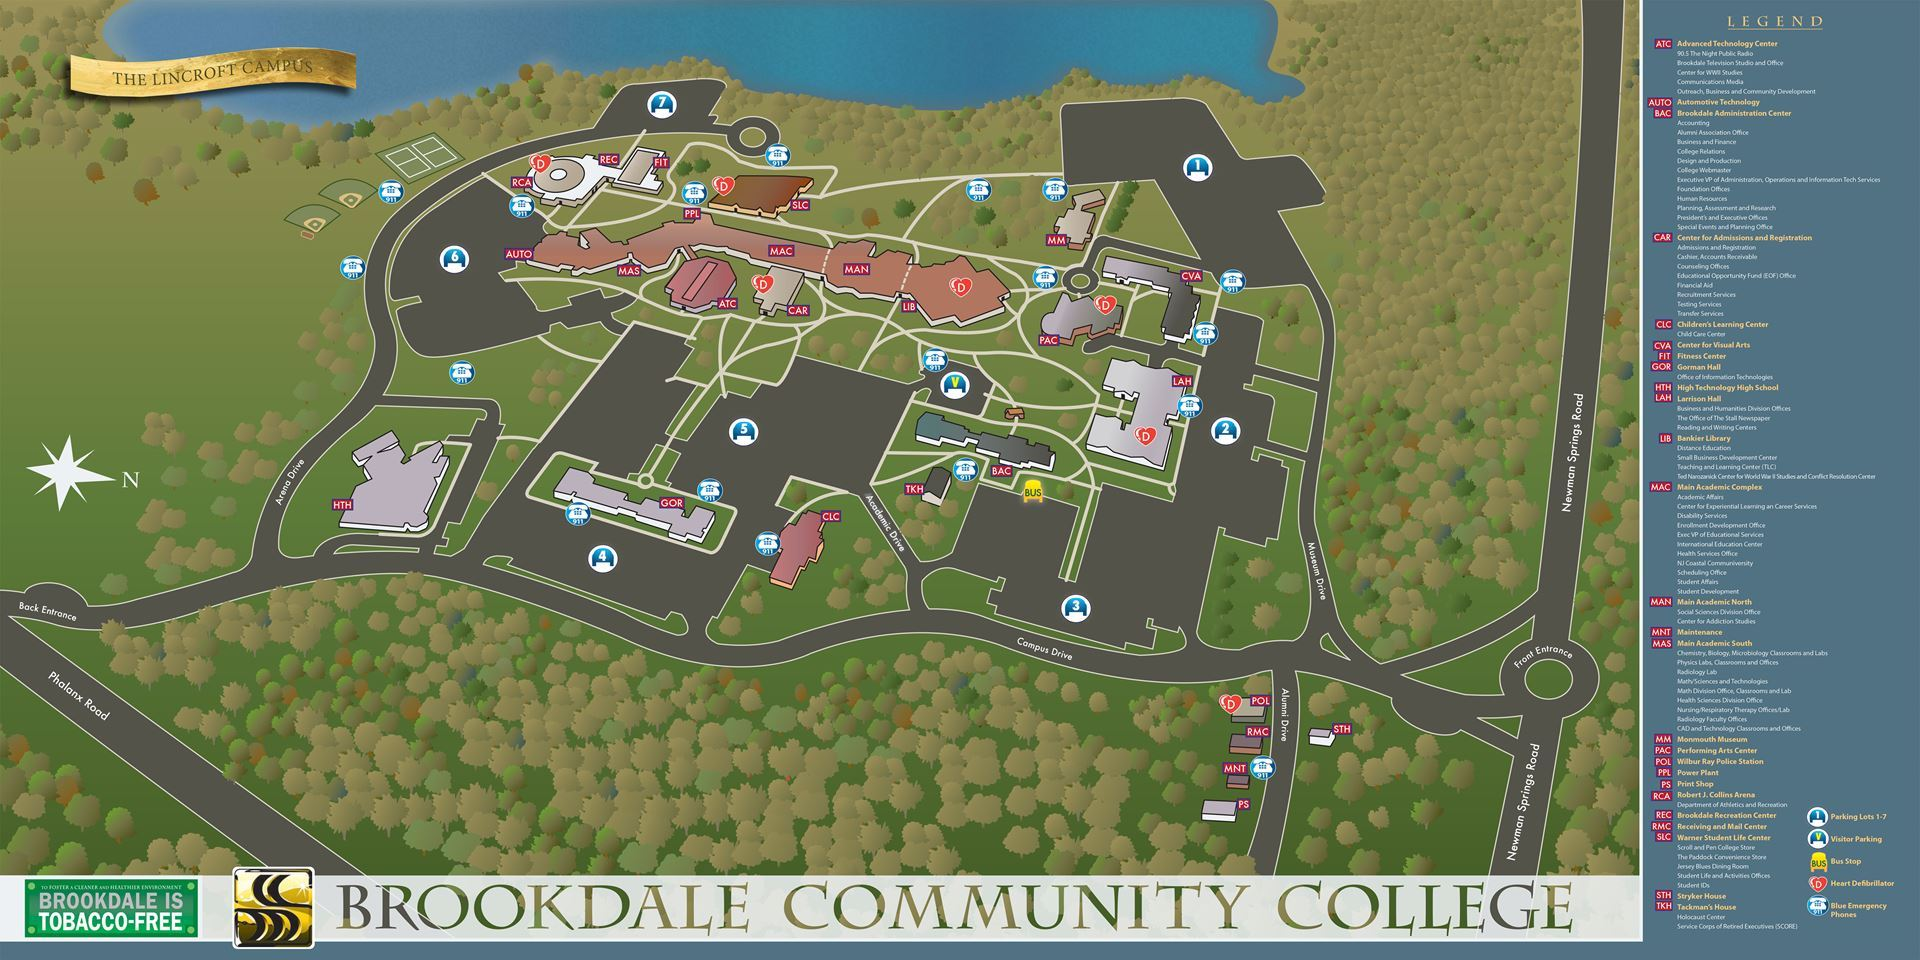 Map of Brookdale Community College